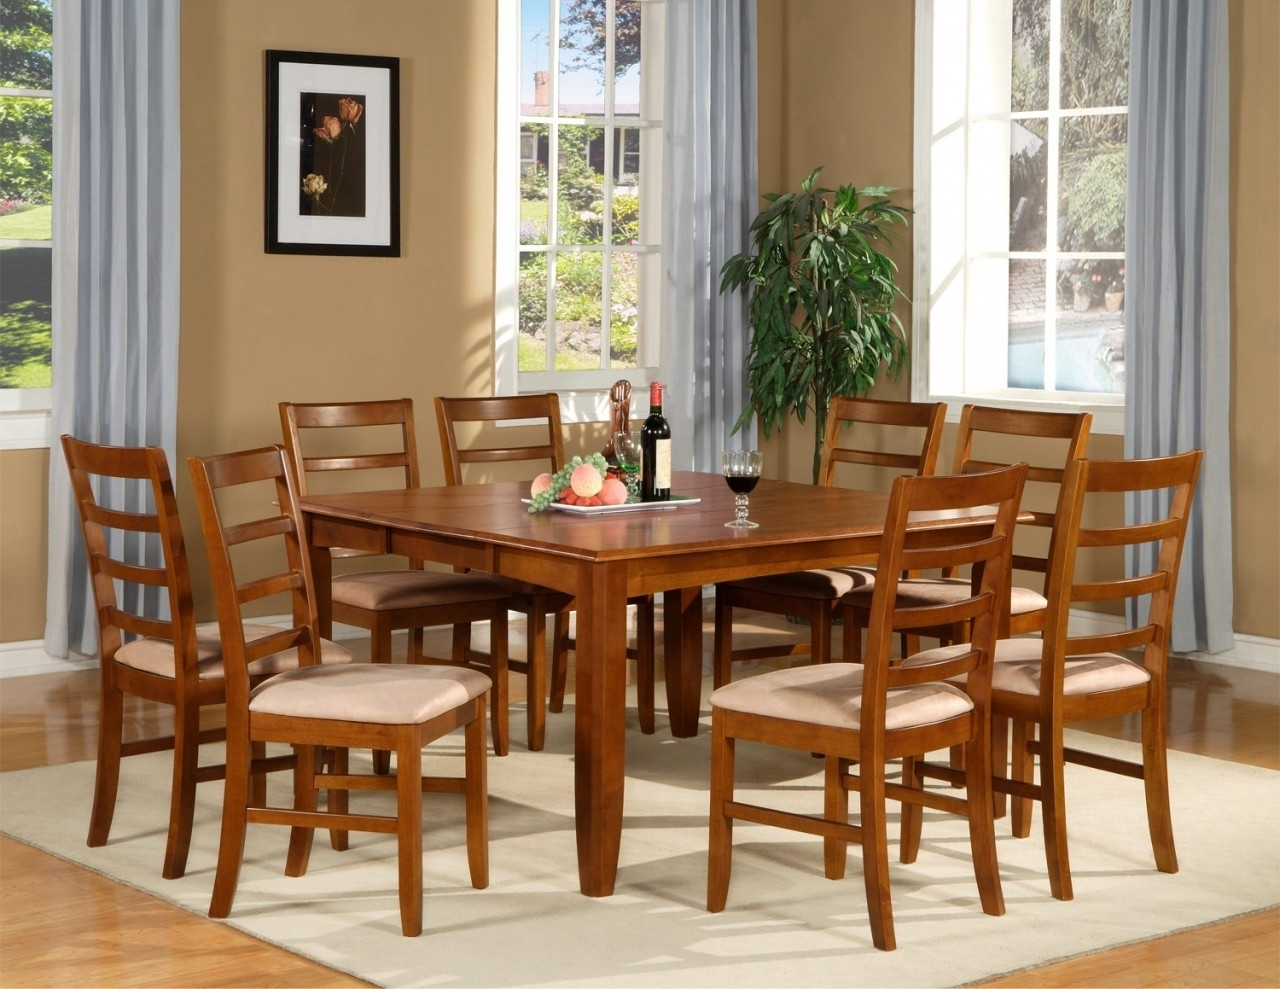 Square Brown Wood Dining Table With Four Legs Addedeight Brown Inside Newest Dining Tables For Eight (View 10 of 25)